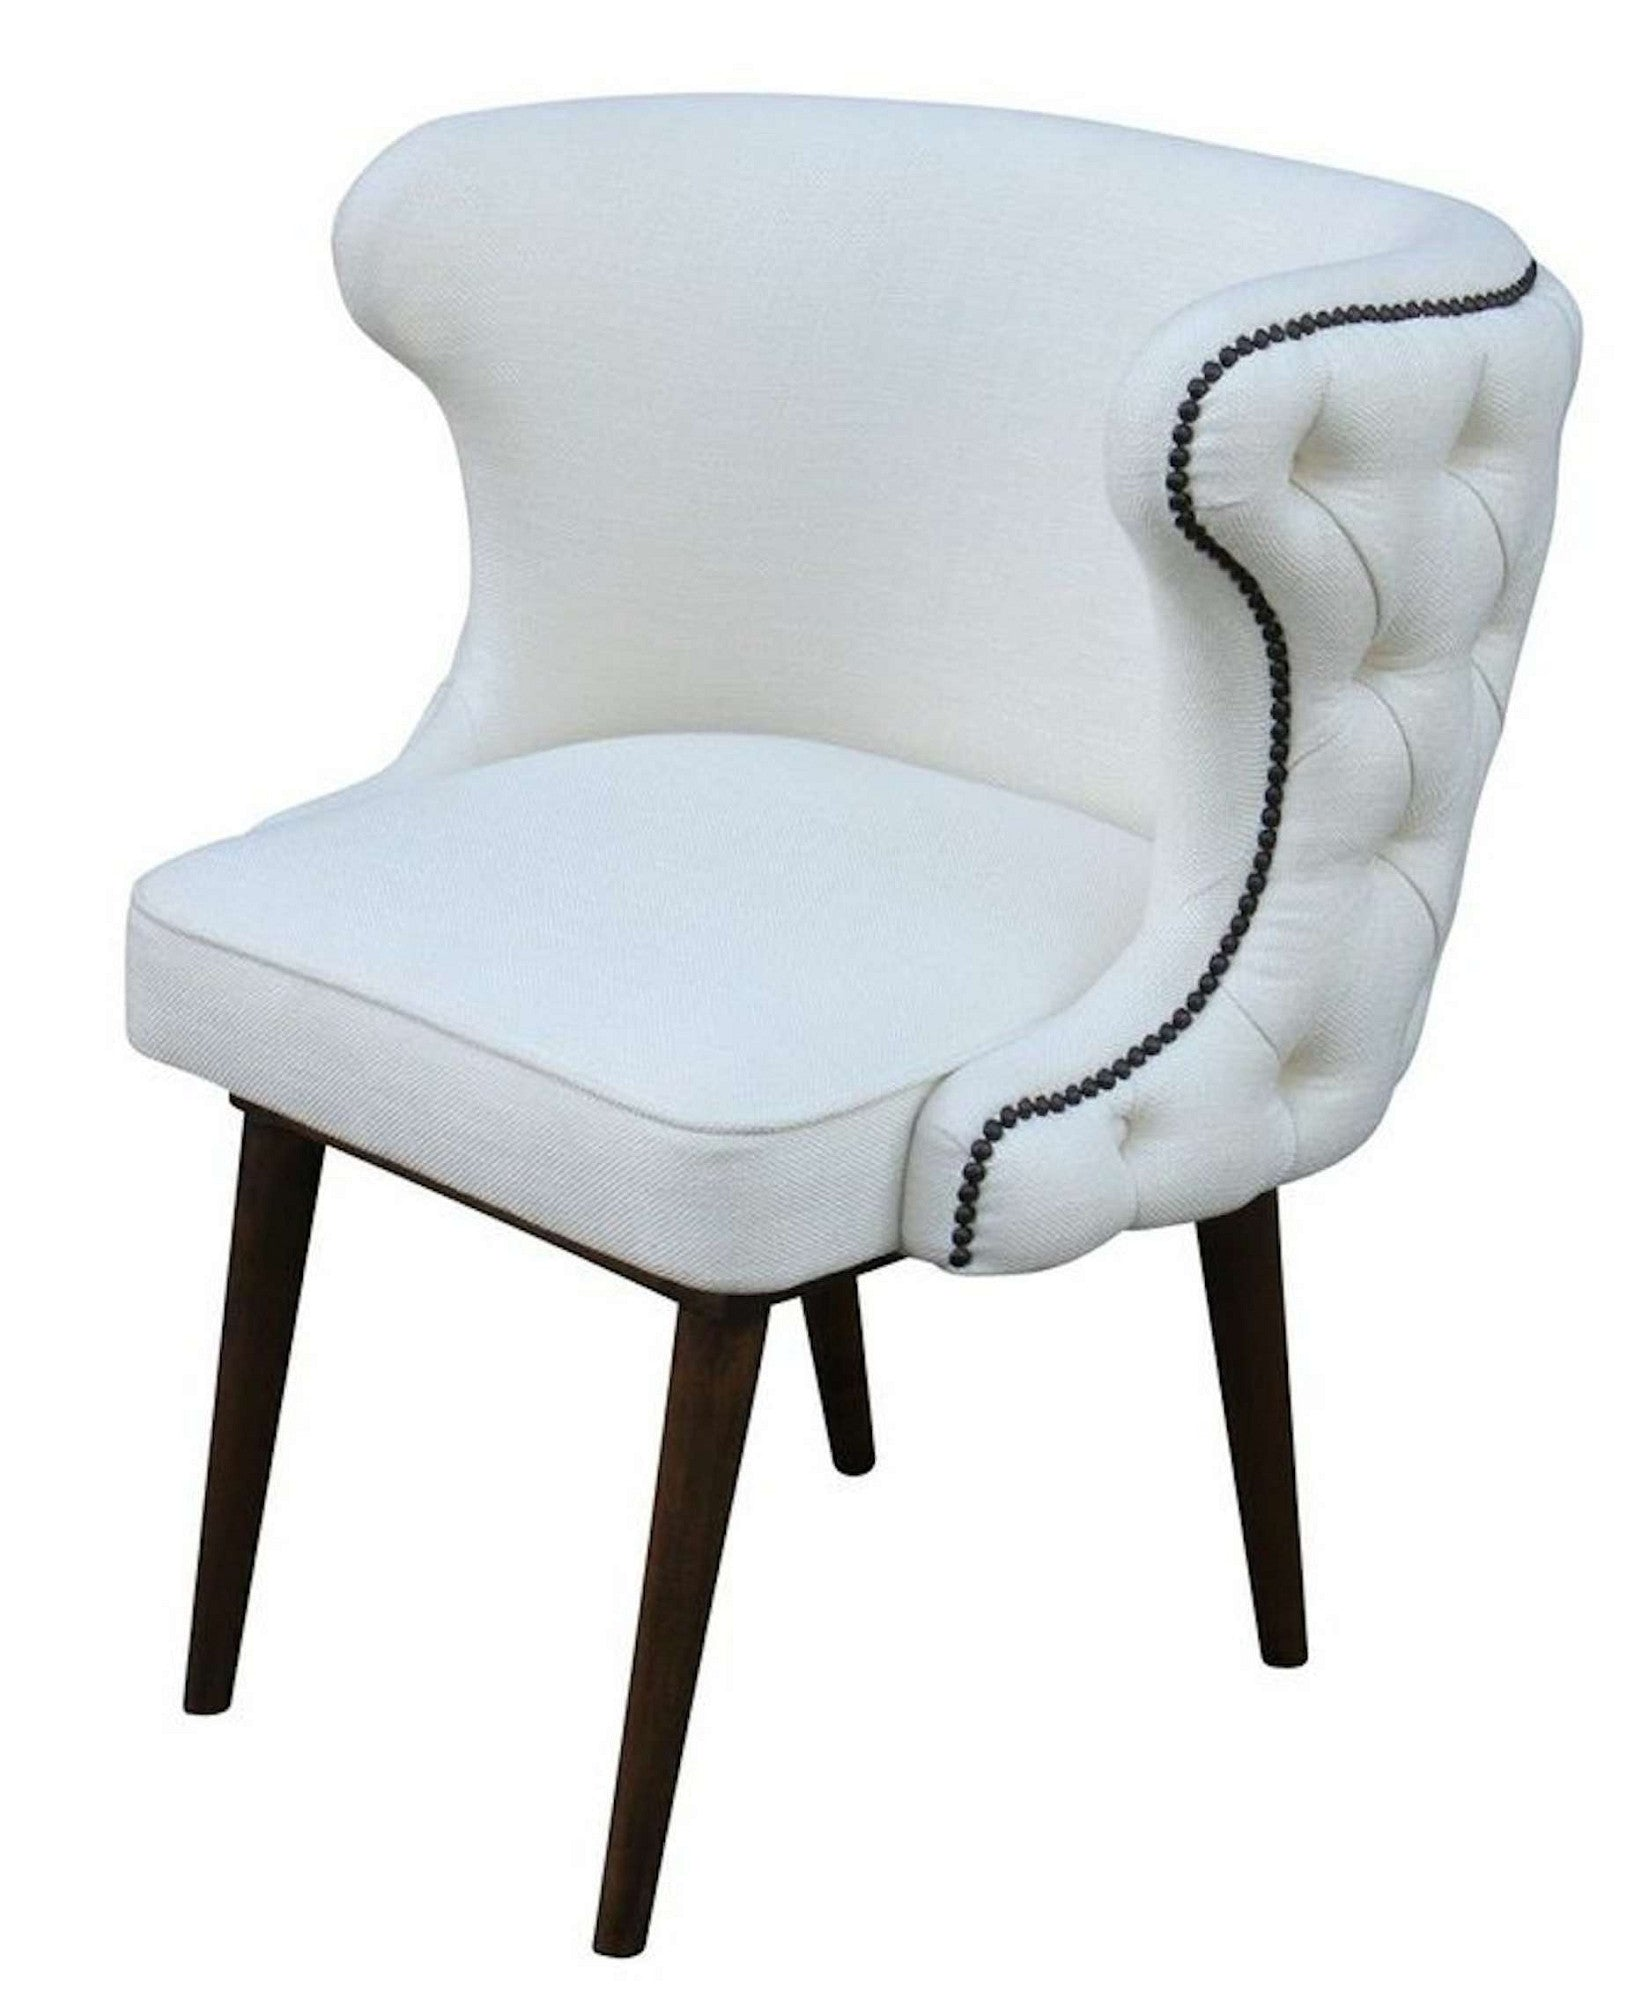 Brentwood Chair Upholstered Dining Chair